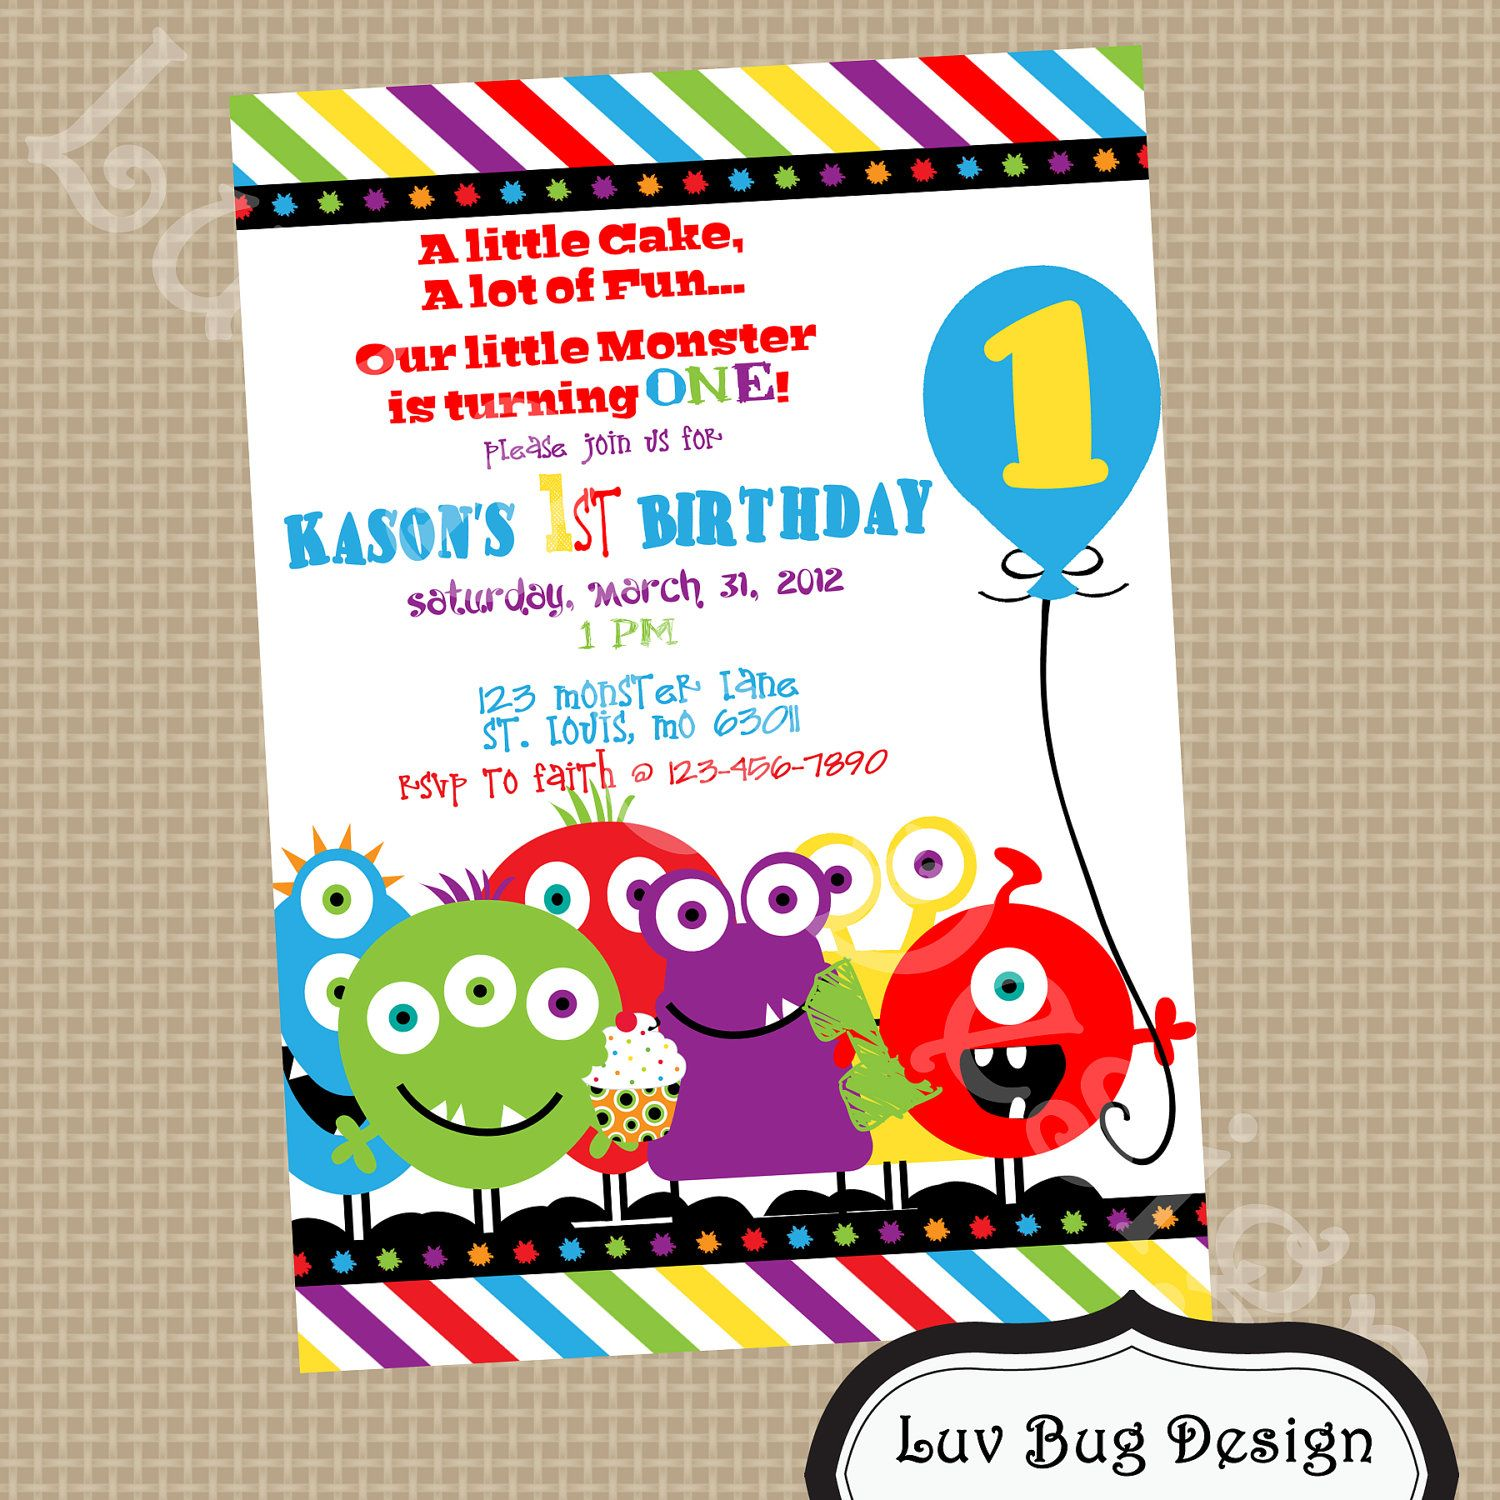 printable little monster birthday party invite diy printable party invitation by luv bug design - Monster Birthday Party Invitations